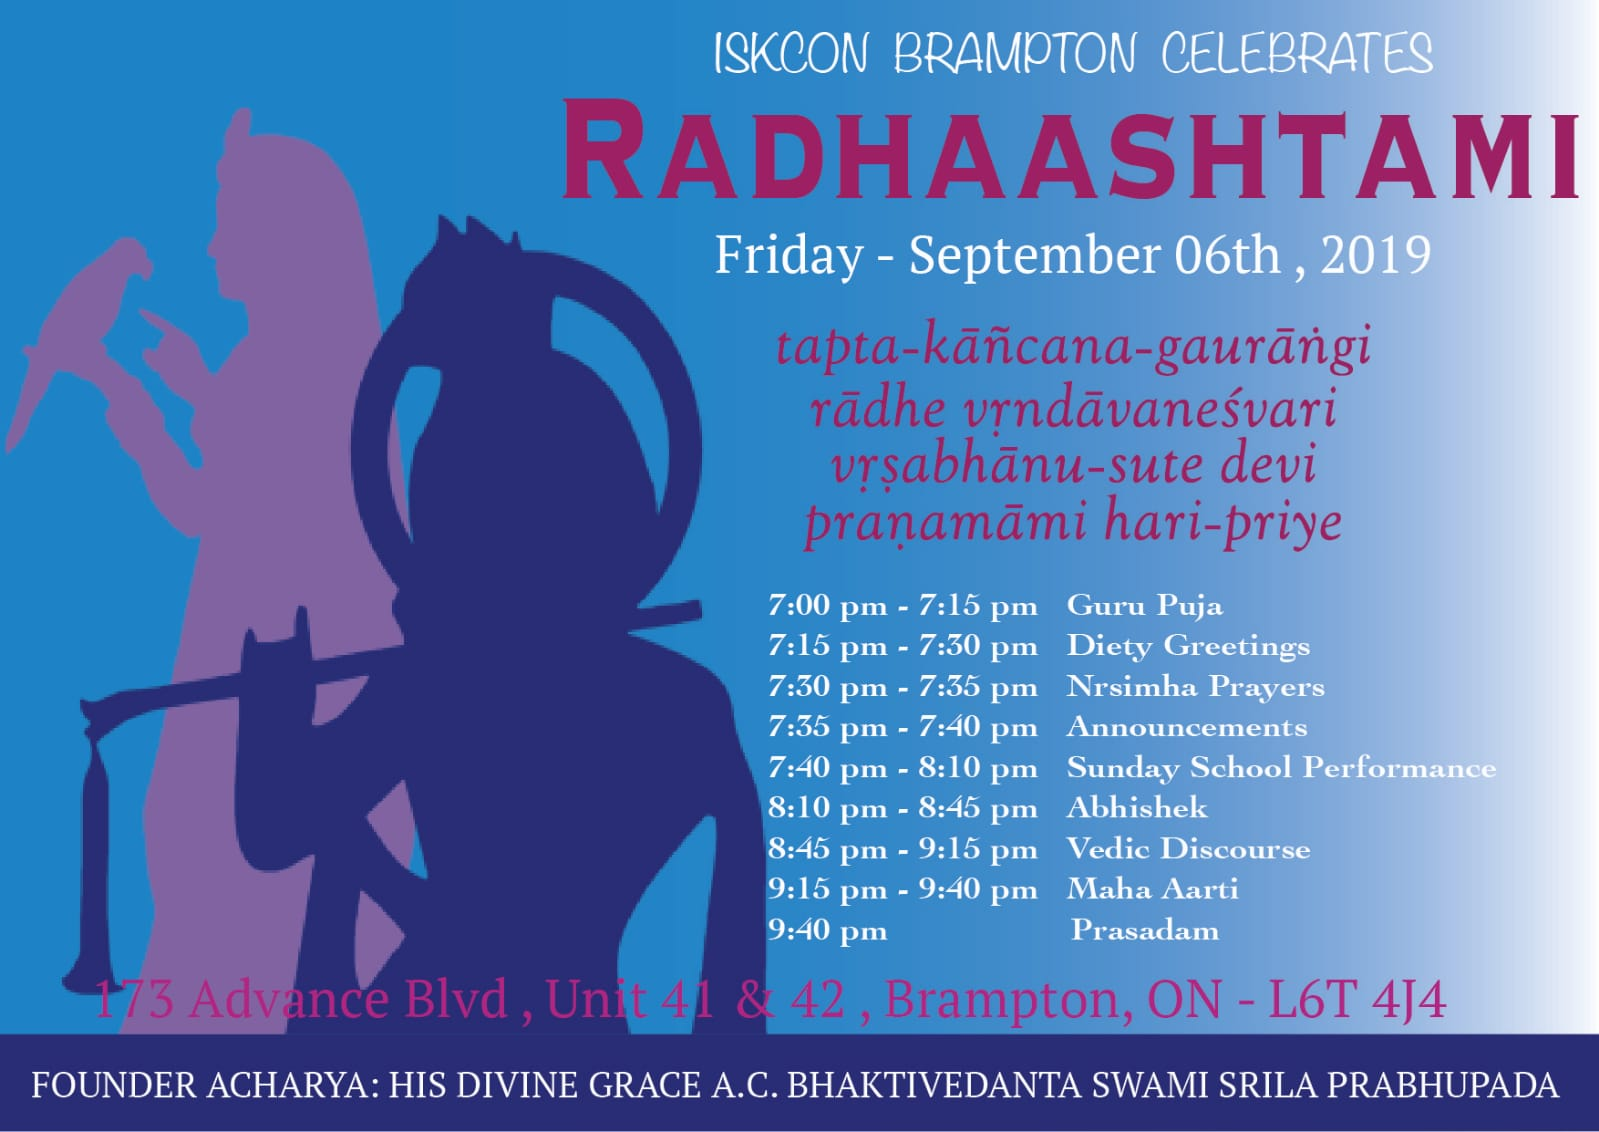 Radhashtami Festival - Special Program - Fri 6th Sep, 2019